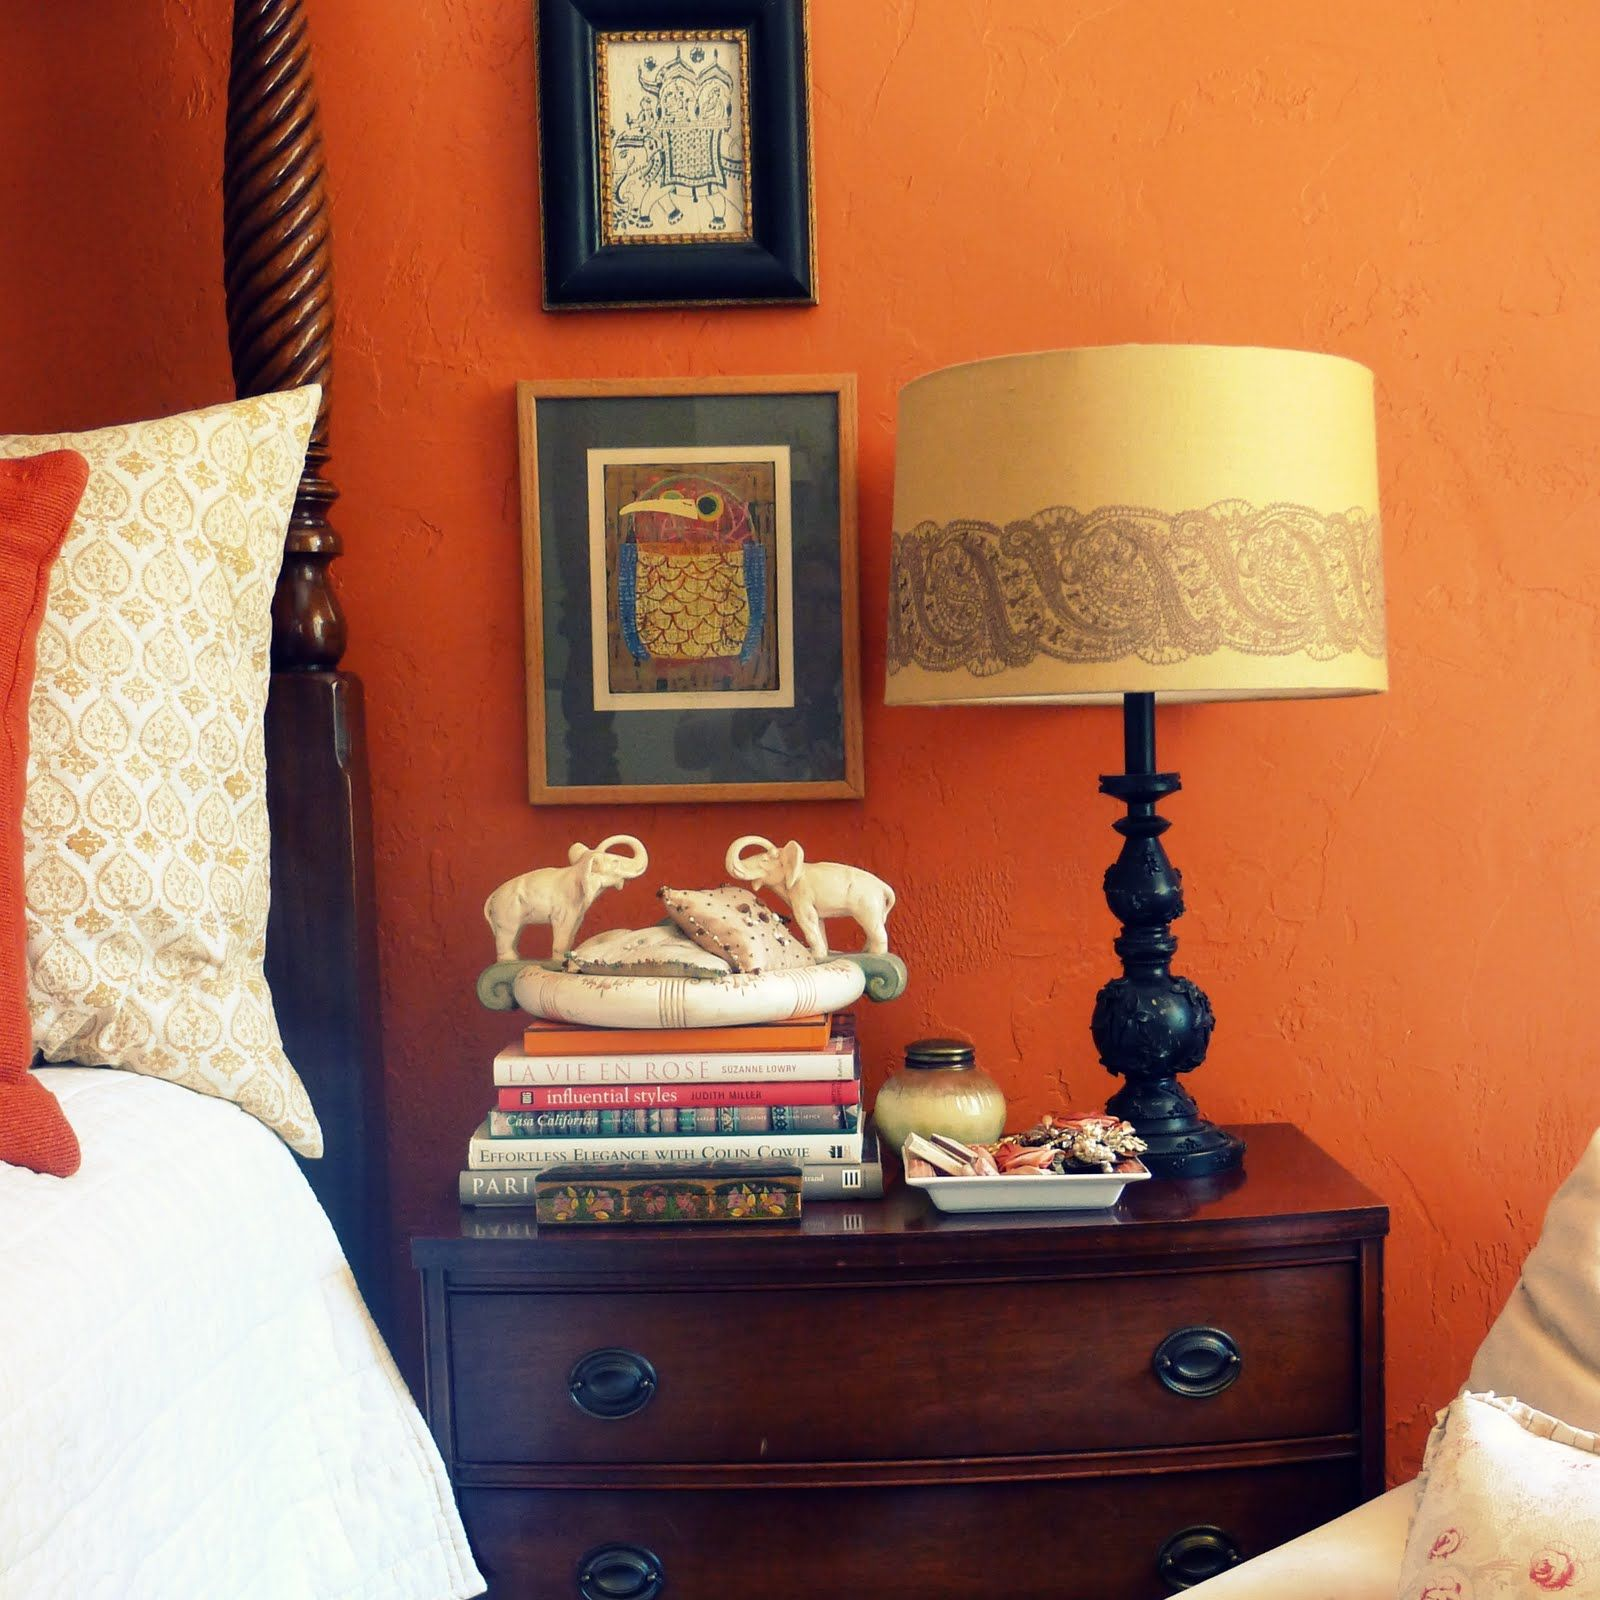 Bedroom Colour Name Bedroom Ideas India Bedroom Interiors India Blue Decor For Bedroom: A Spicy Indian Orange Bedroom. Oranges Stimulate Sexual